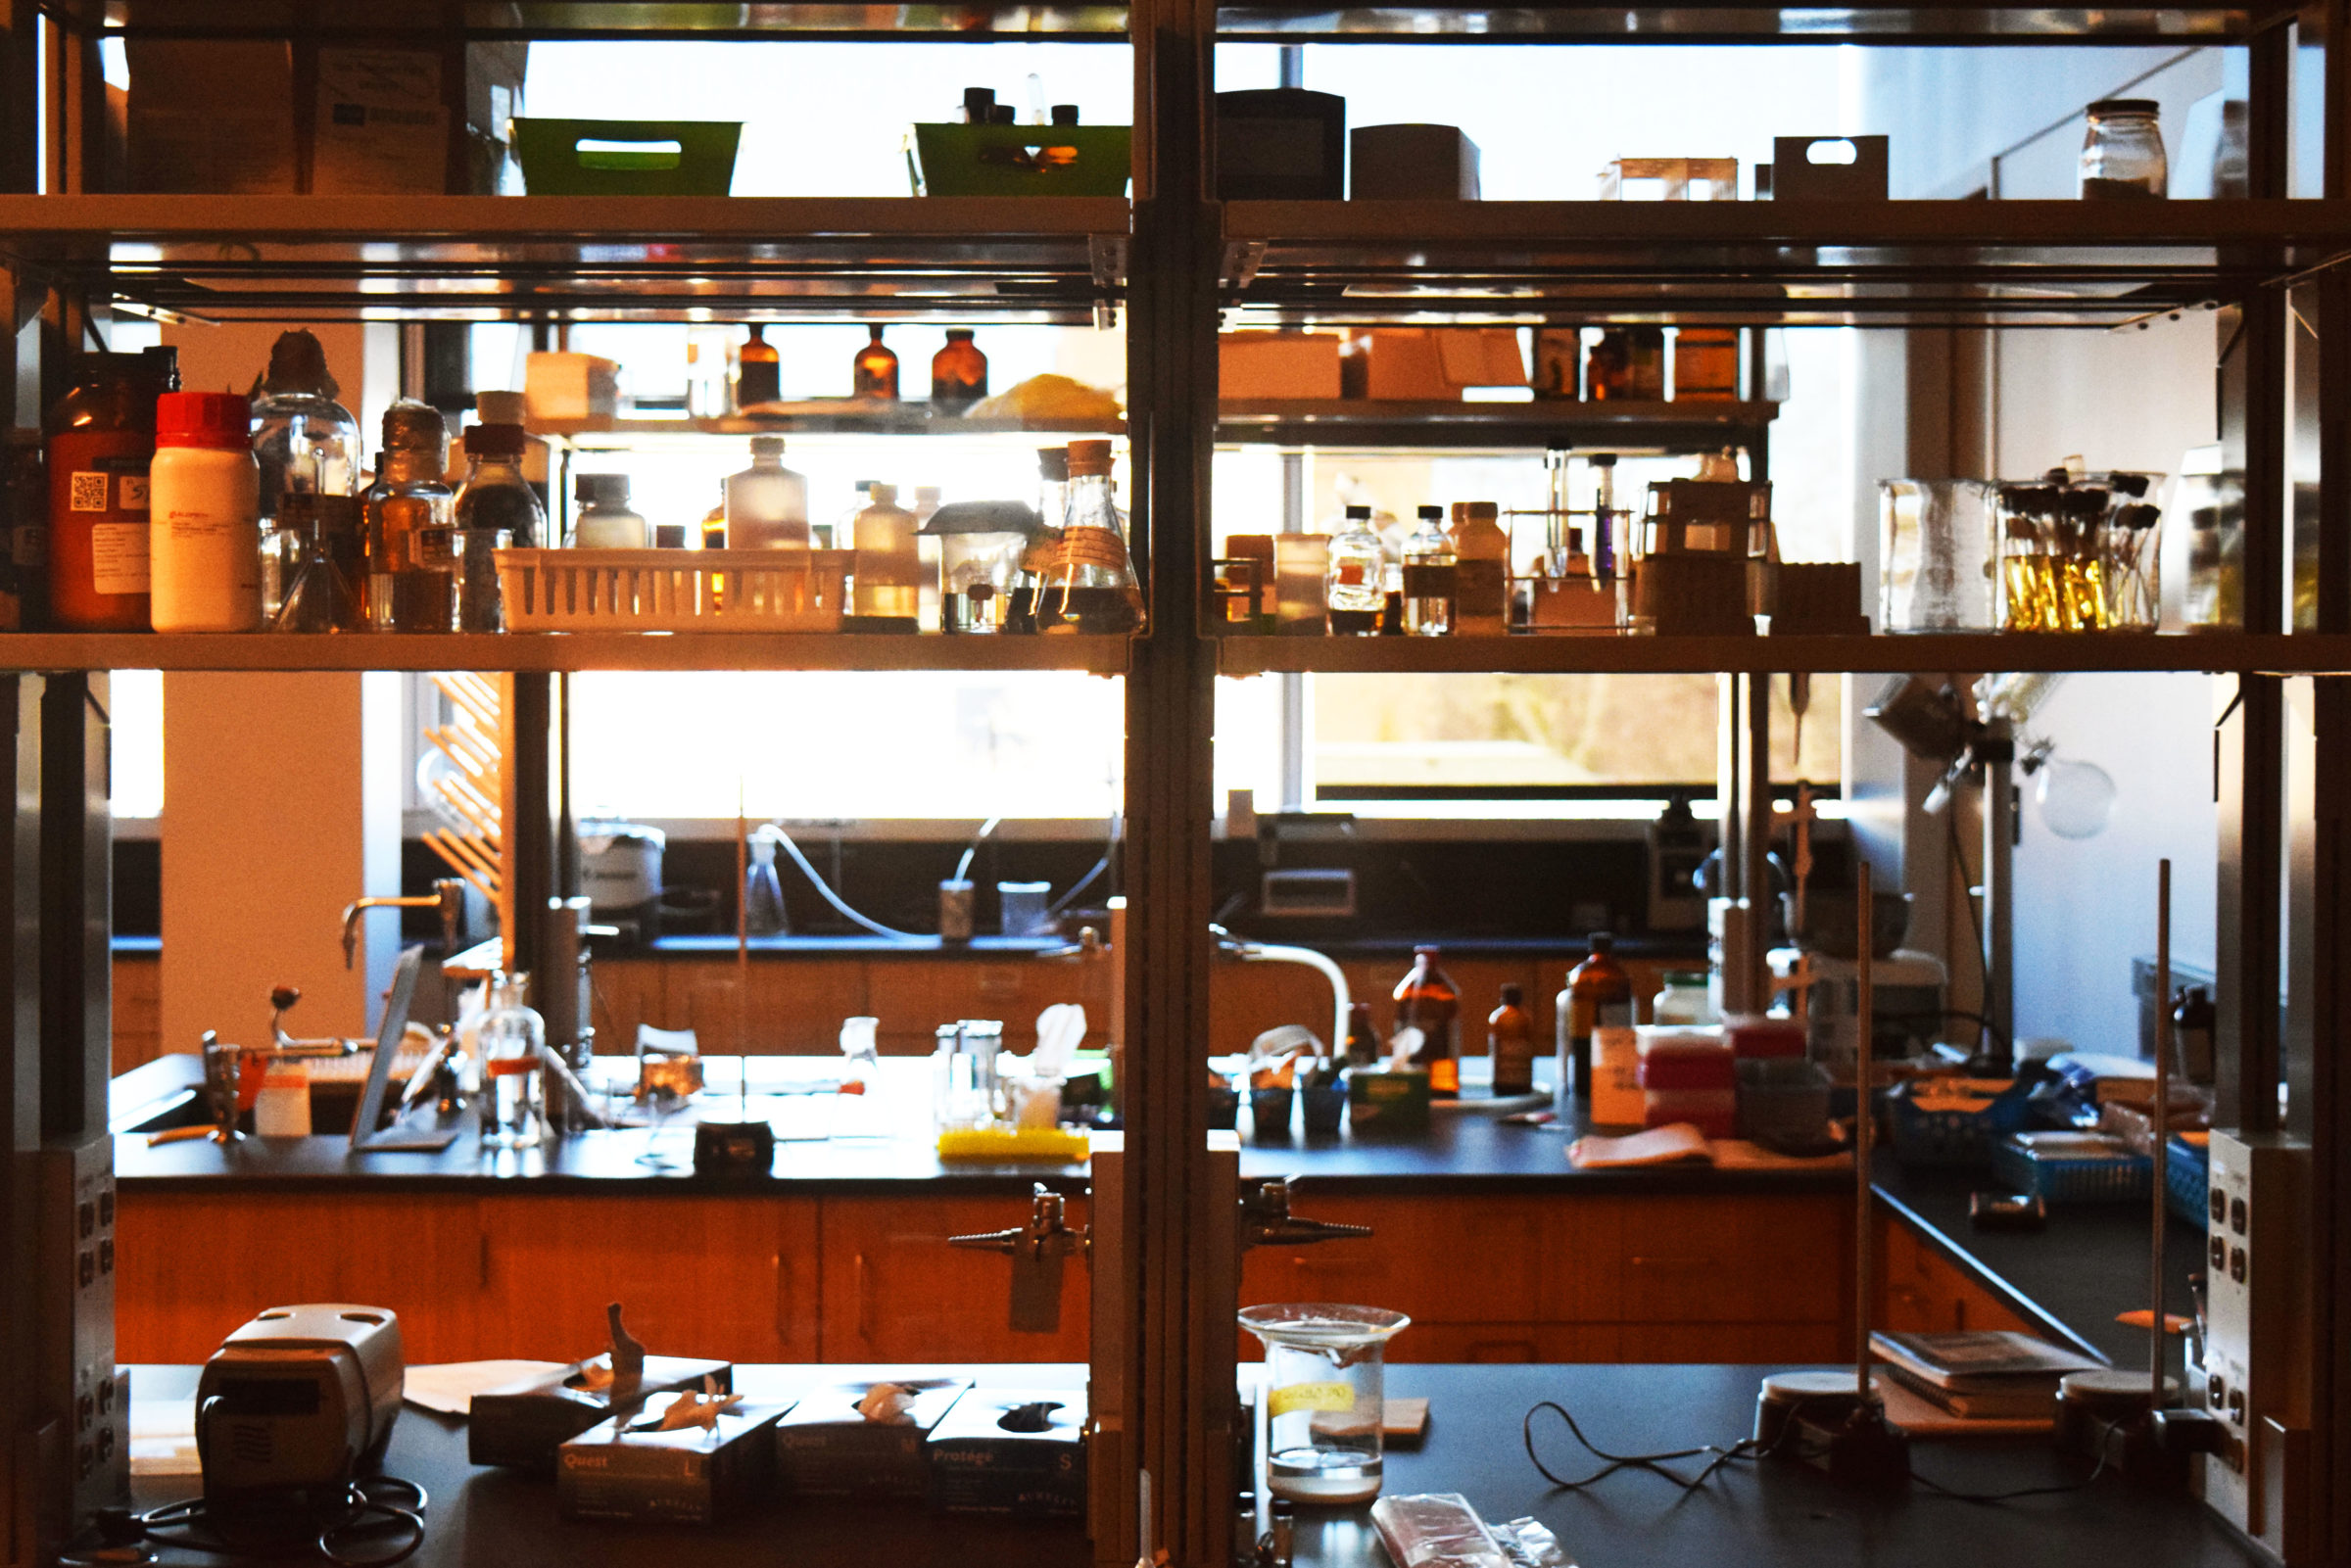 Chemistry and Biochemistry Department featured image background